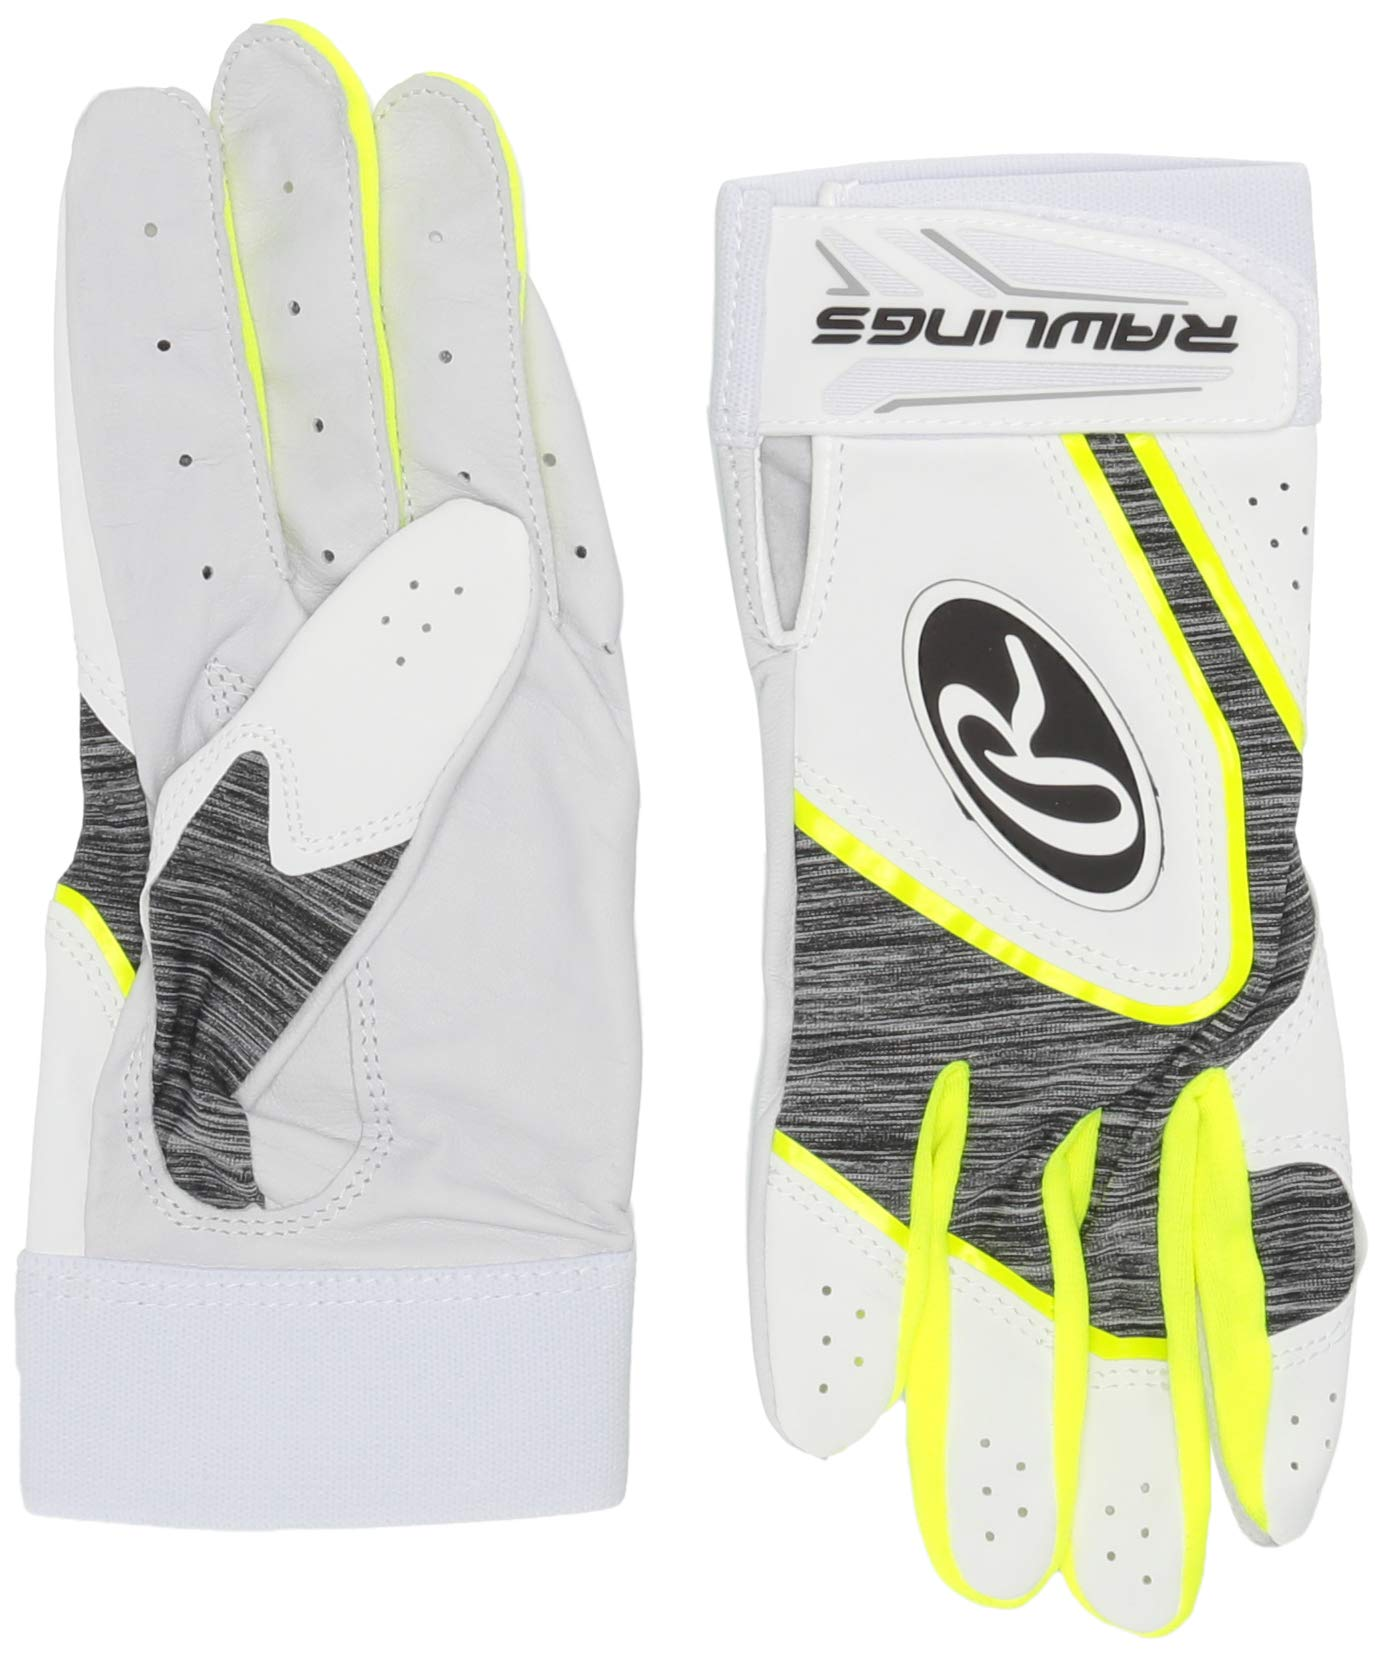 Rawlings 5150WBG-OY-88 Rawlngs 5150 Batting Gloves, Optic Yellow by Rawlings